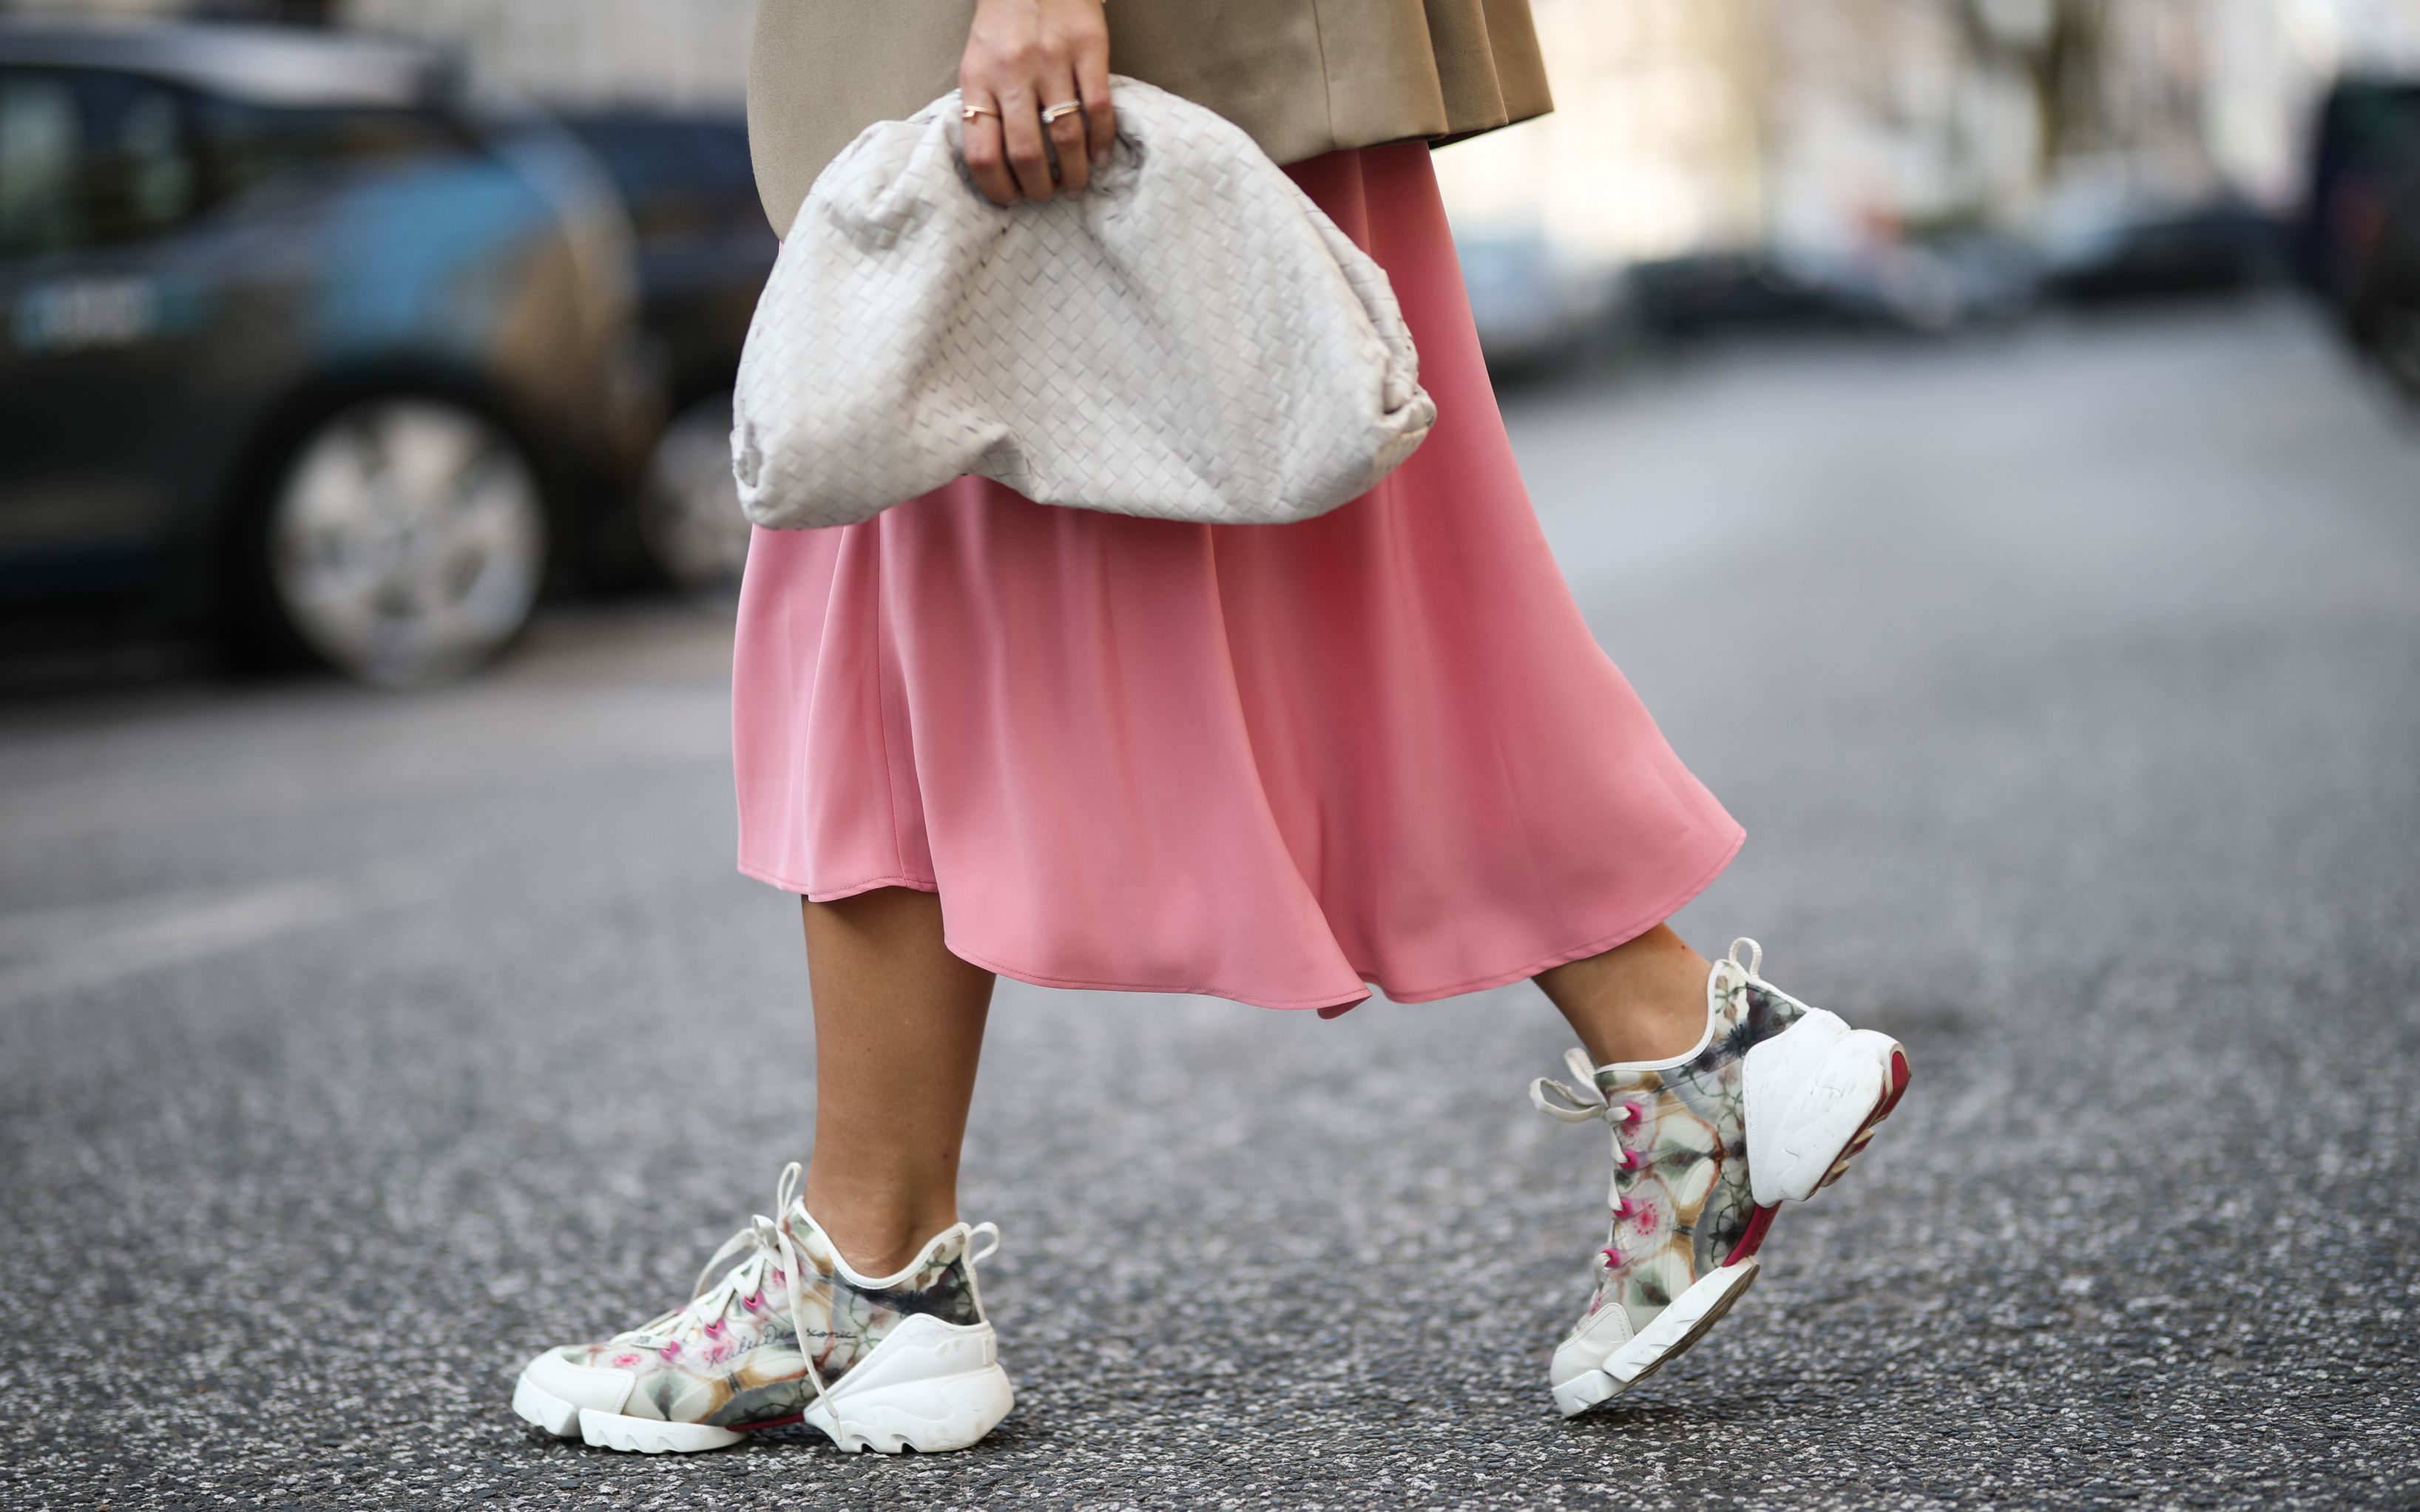 The 16 Hottest Sneakers to Buy Right Now, According to Your